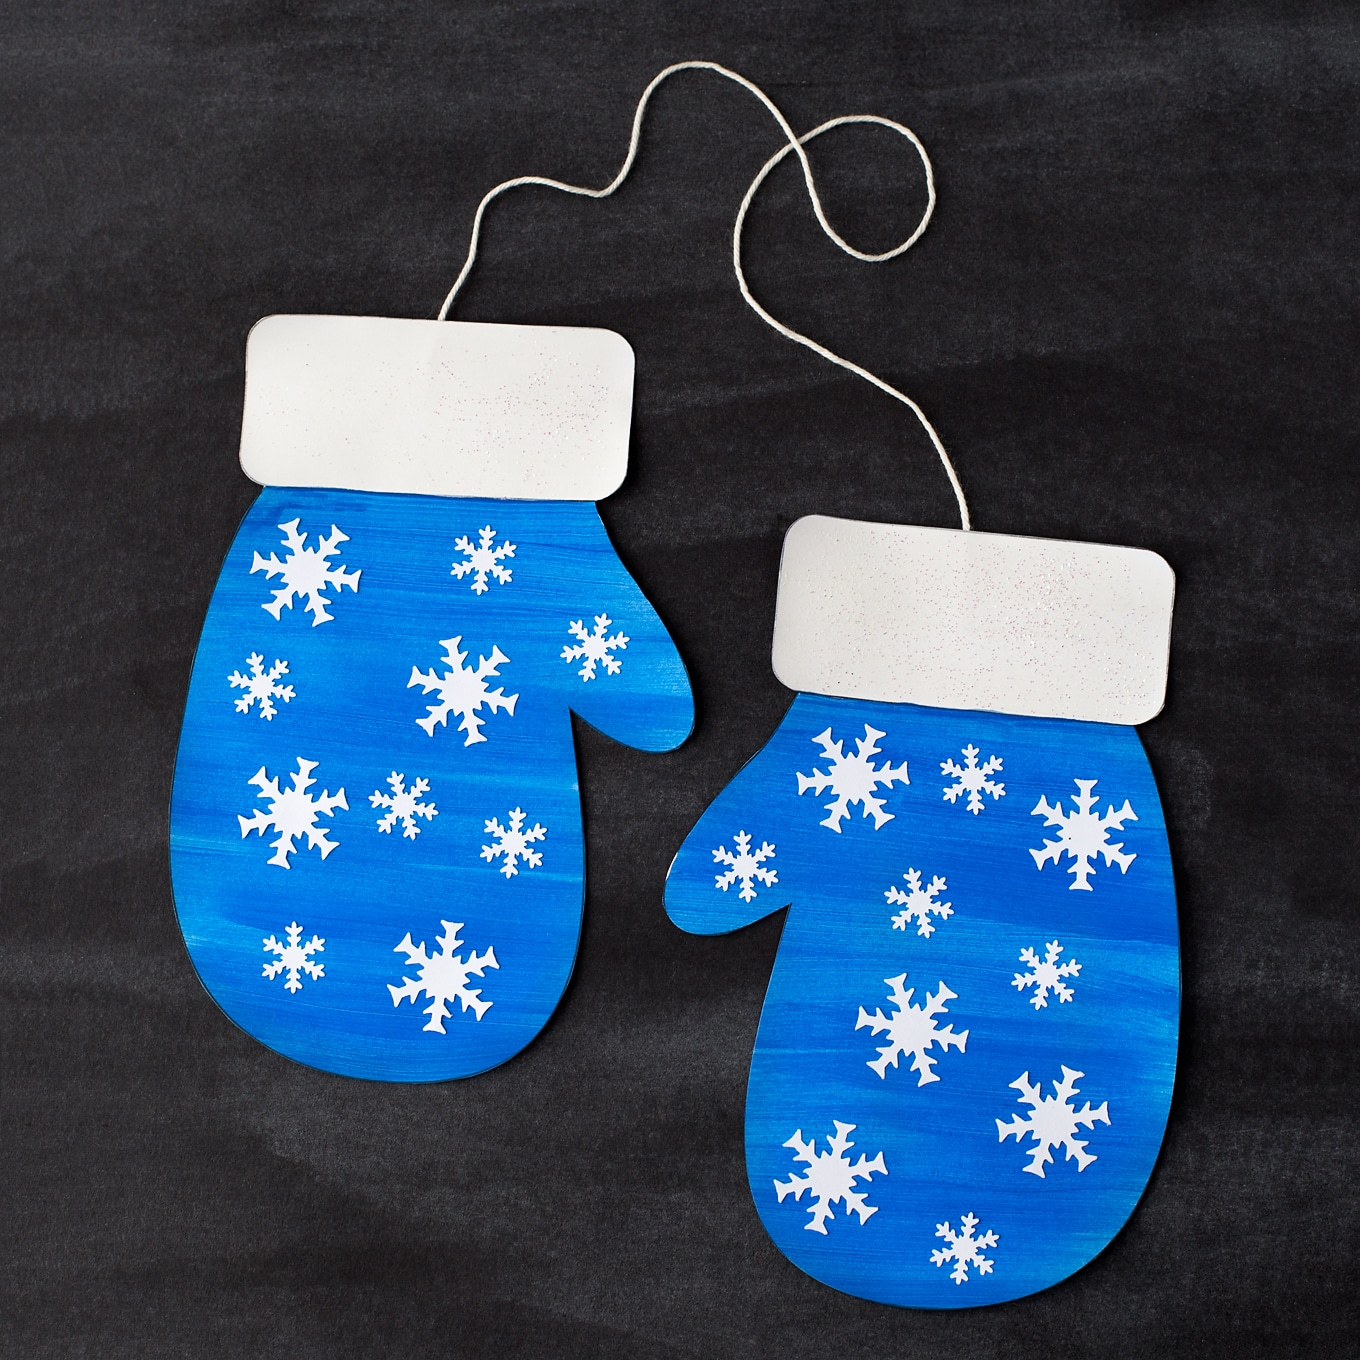 Blue Paper Mitten Craft with Snowflakes